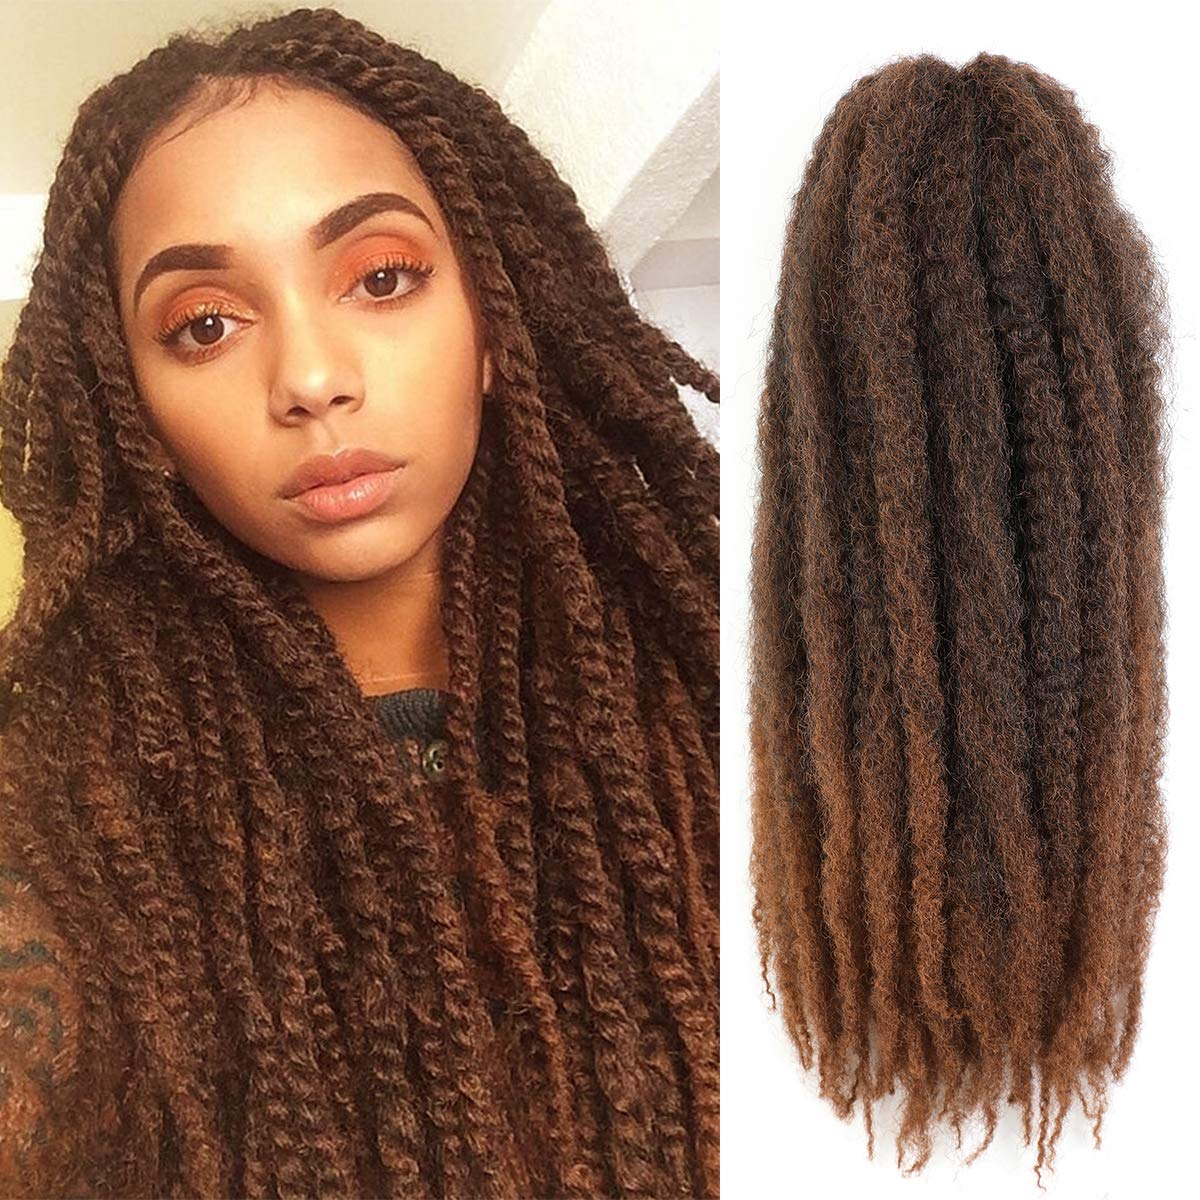 AMELI 6 Packs Marley Braiding Hair for Twists Synthetic Fiber Hair Afro Kinky Hair Marley Braid Hair Extensions (24inch, T30)